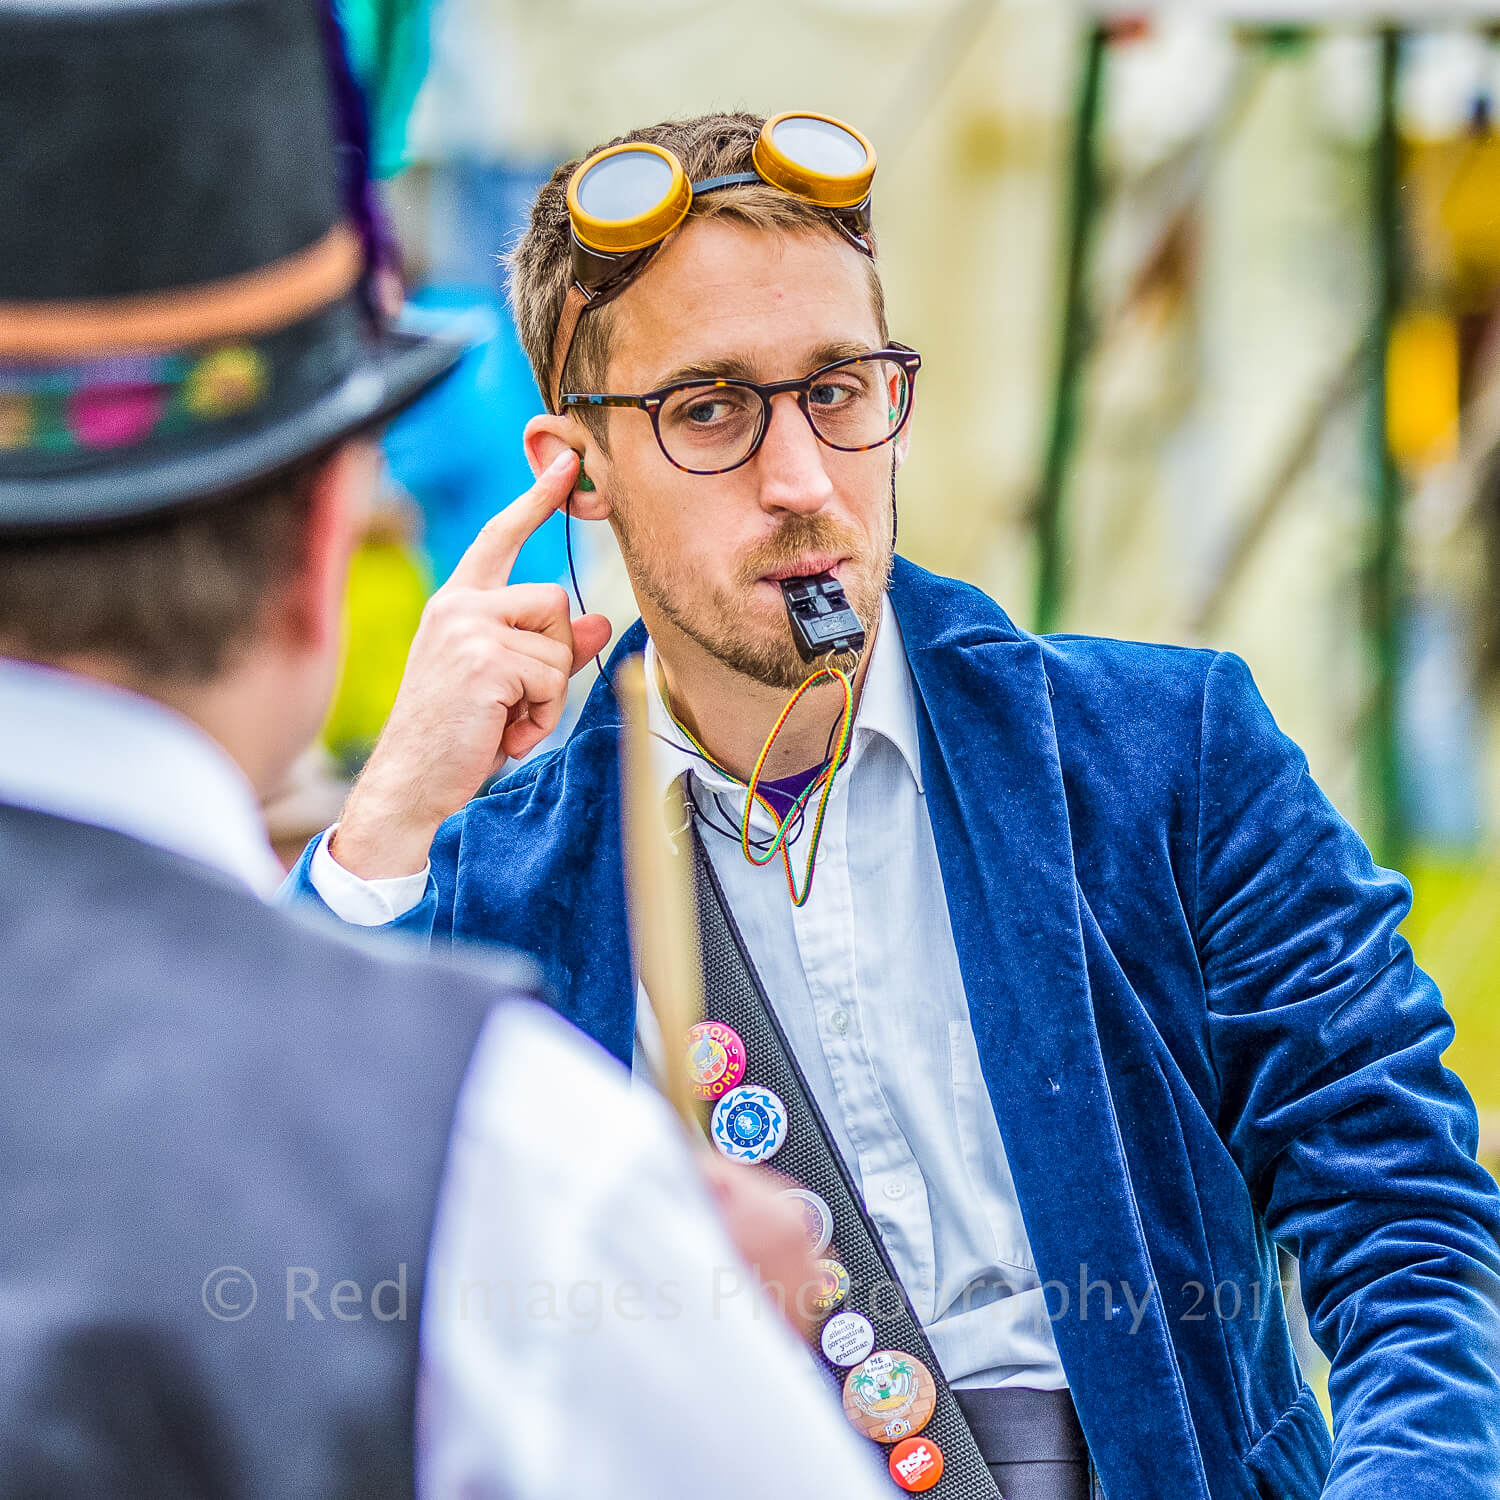 A colour waist up image of the glasses wearing conductor of a drum band playing at The Bromyard Folk Festival 2017. He wears a blue velvet jacket over a white open neck shirt, there are steam punk goggles sat on the top of his head, and has a whistle in his mouth.